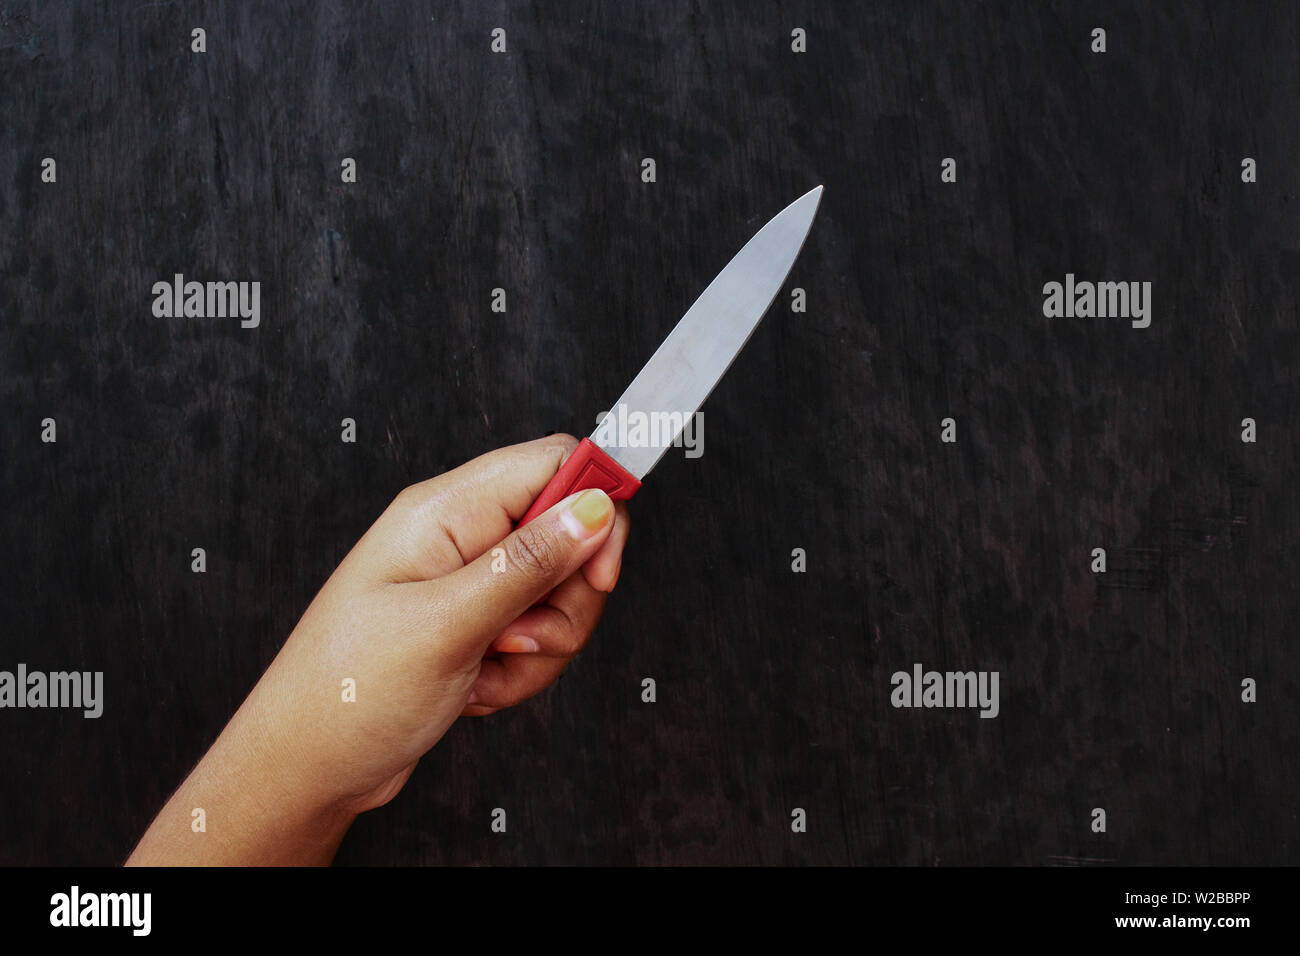 Brown Skin Girl Holding Knife on Black Wood Board Background Stock Photo